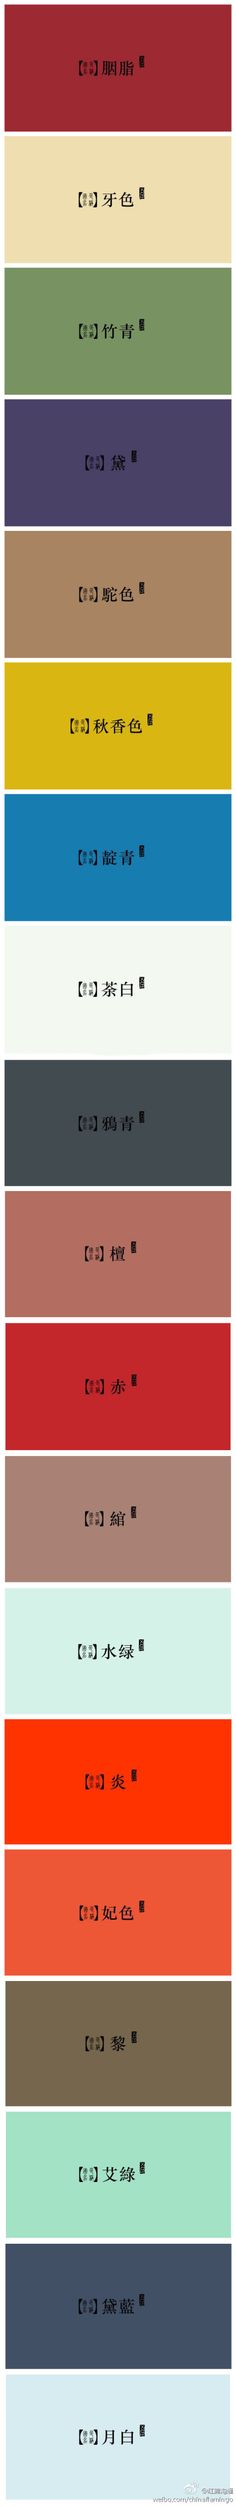 How Ancient Chinese Name Their Colors